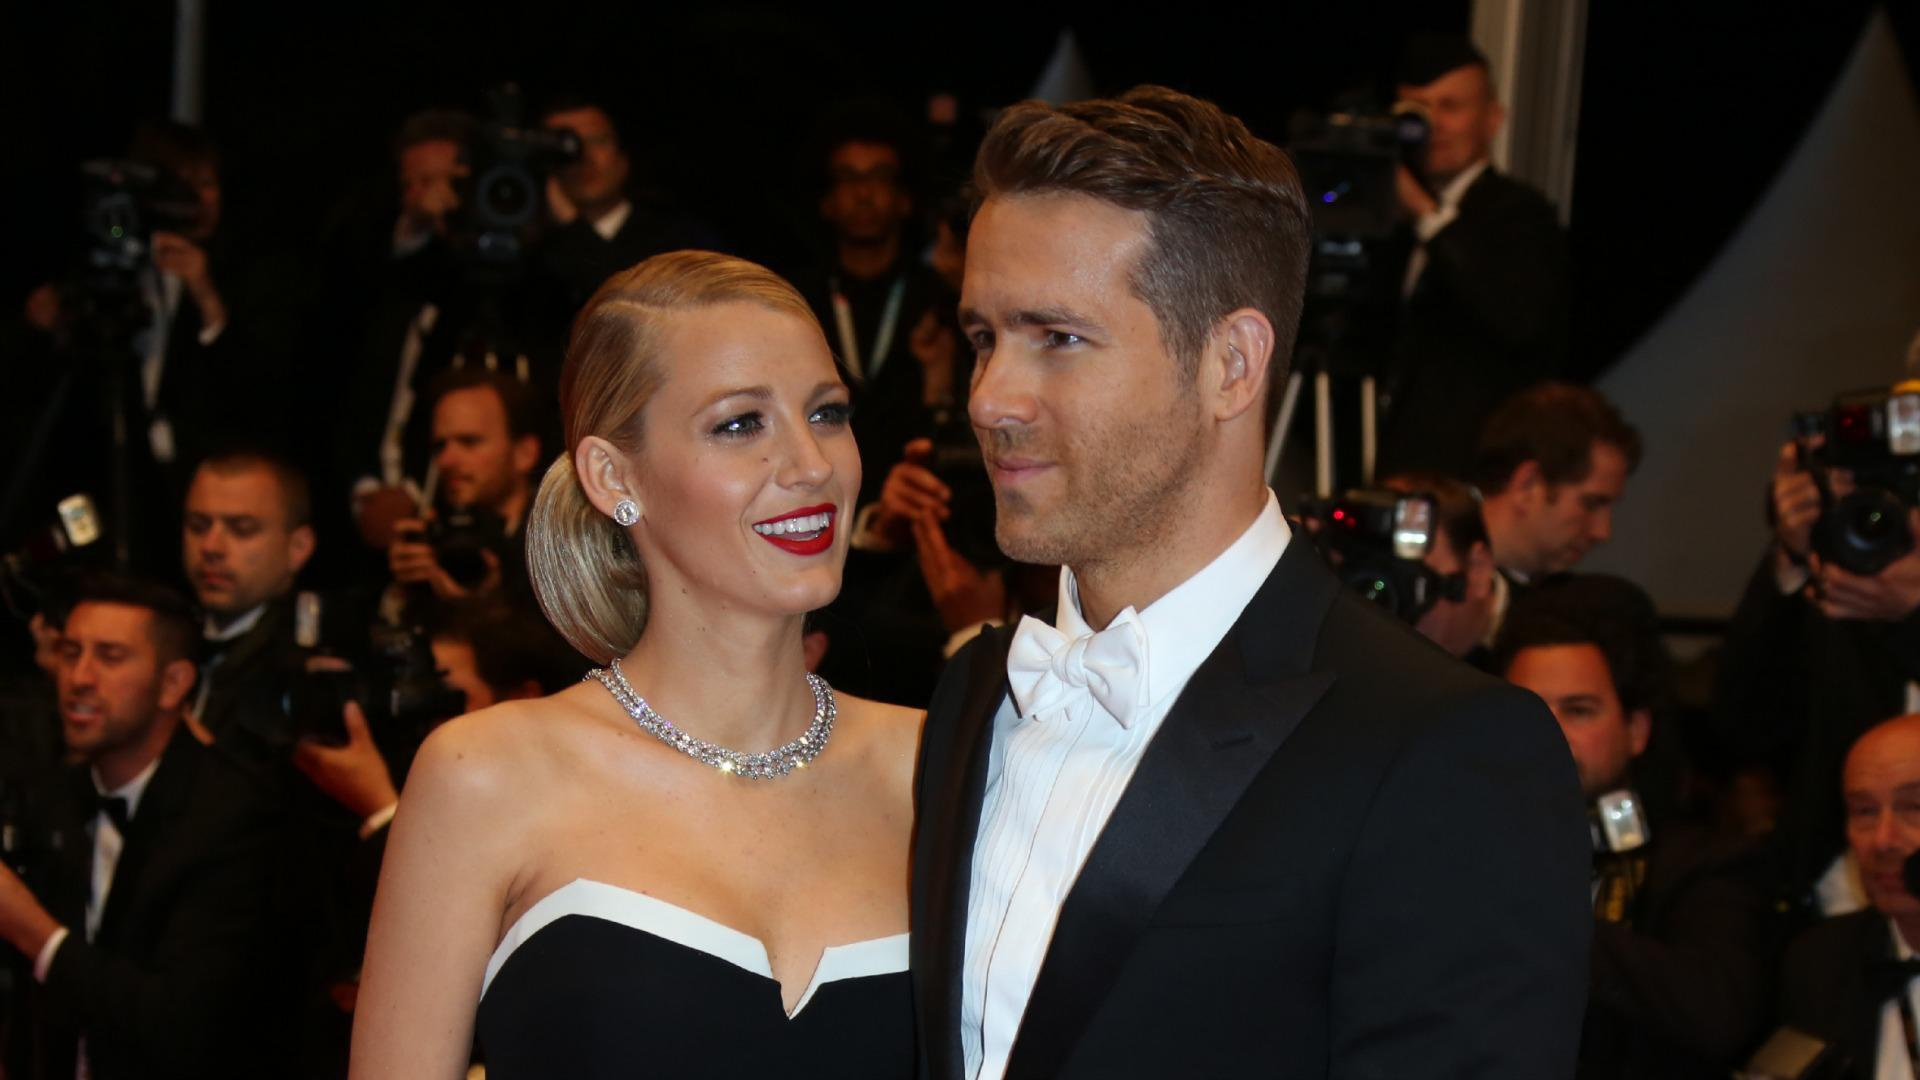 Blake Lively wants a whole litter of kids with Ryan Reynolds